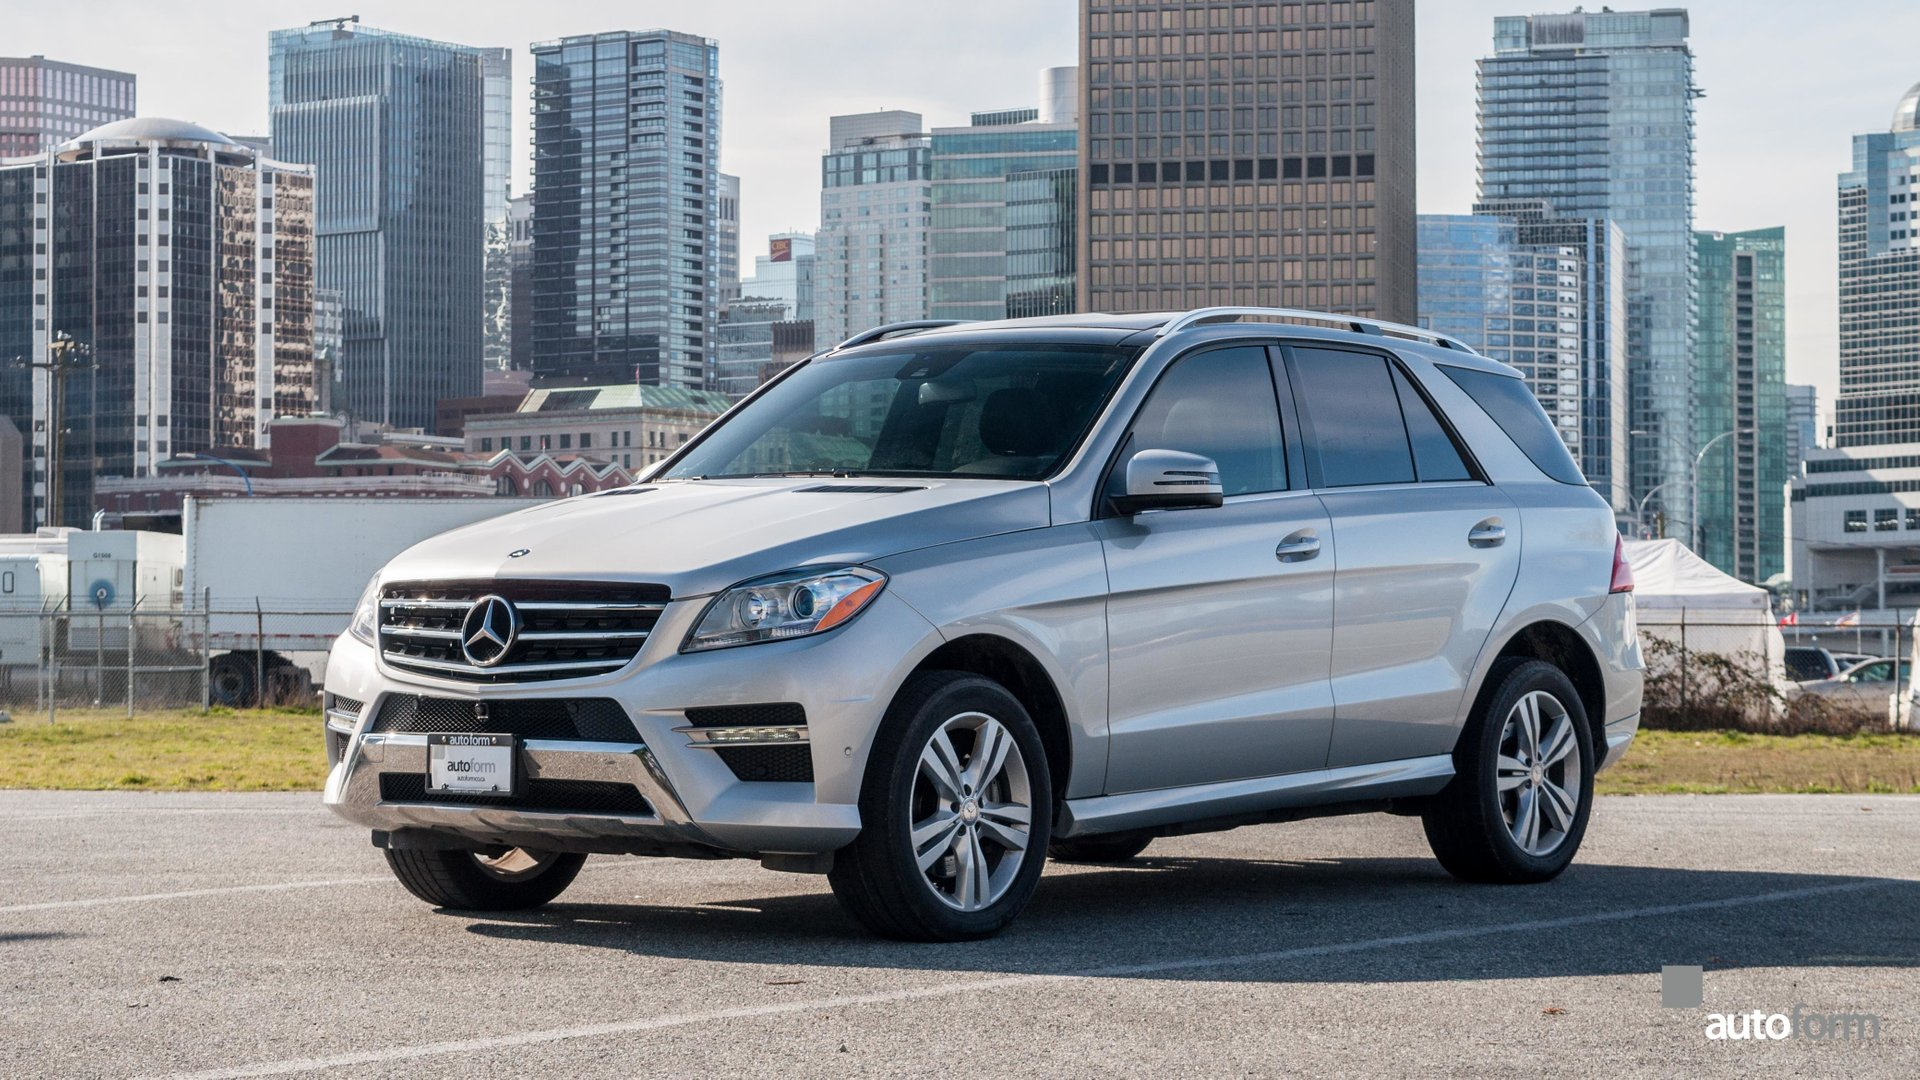 2015 mercedes benz ml350 bluetec 4matic